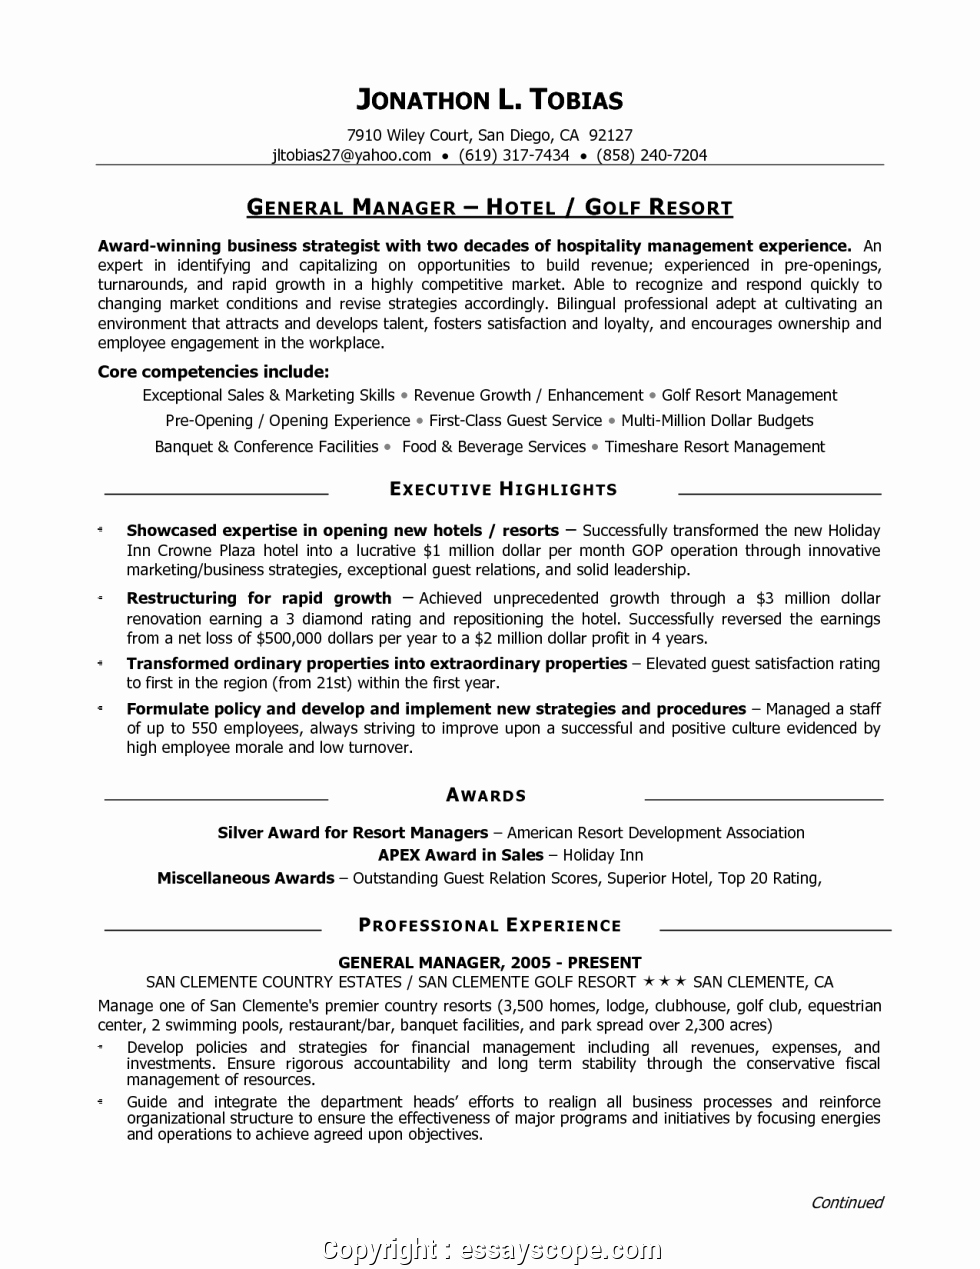 Restaurant General Manager Resumes Fresh Newest Best Restaurant General Manager Resume Restaurant